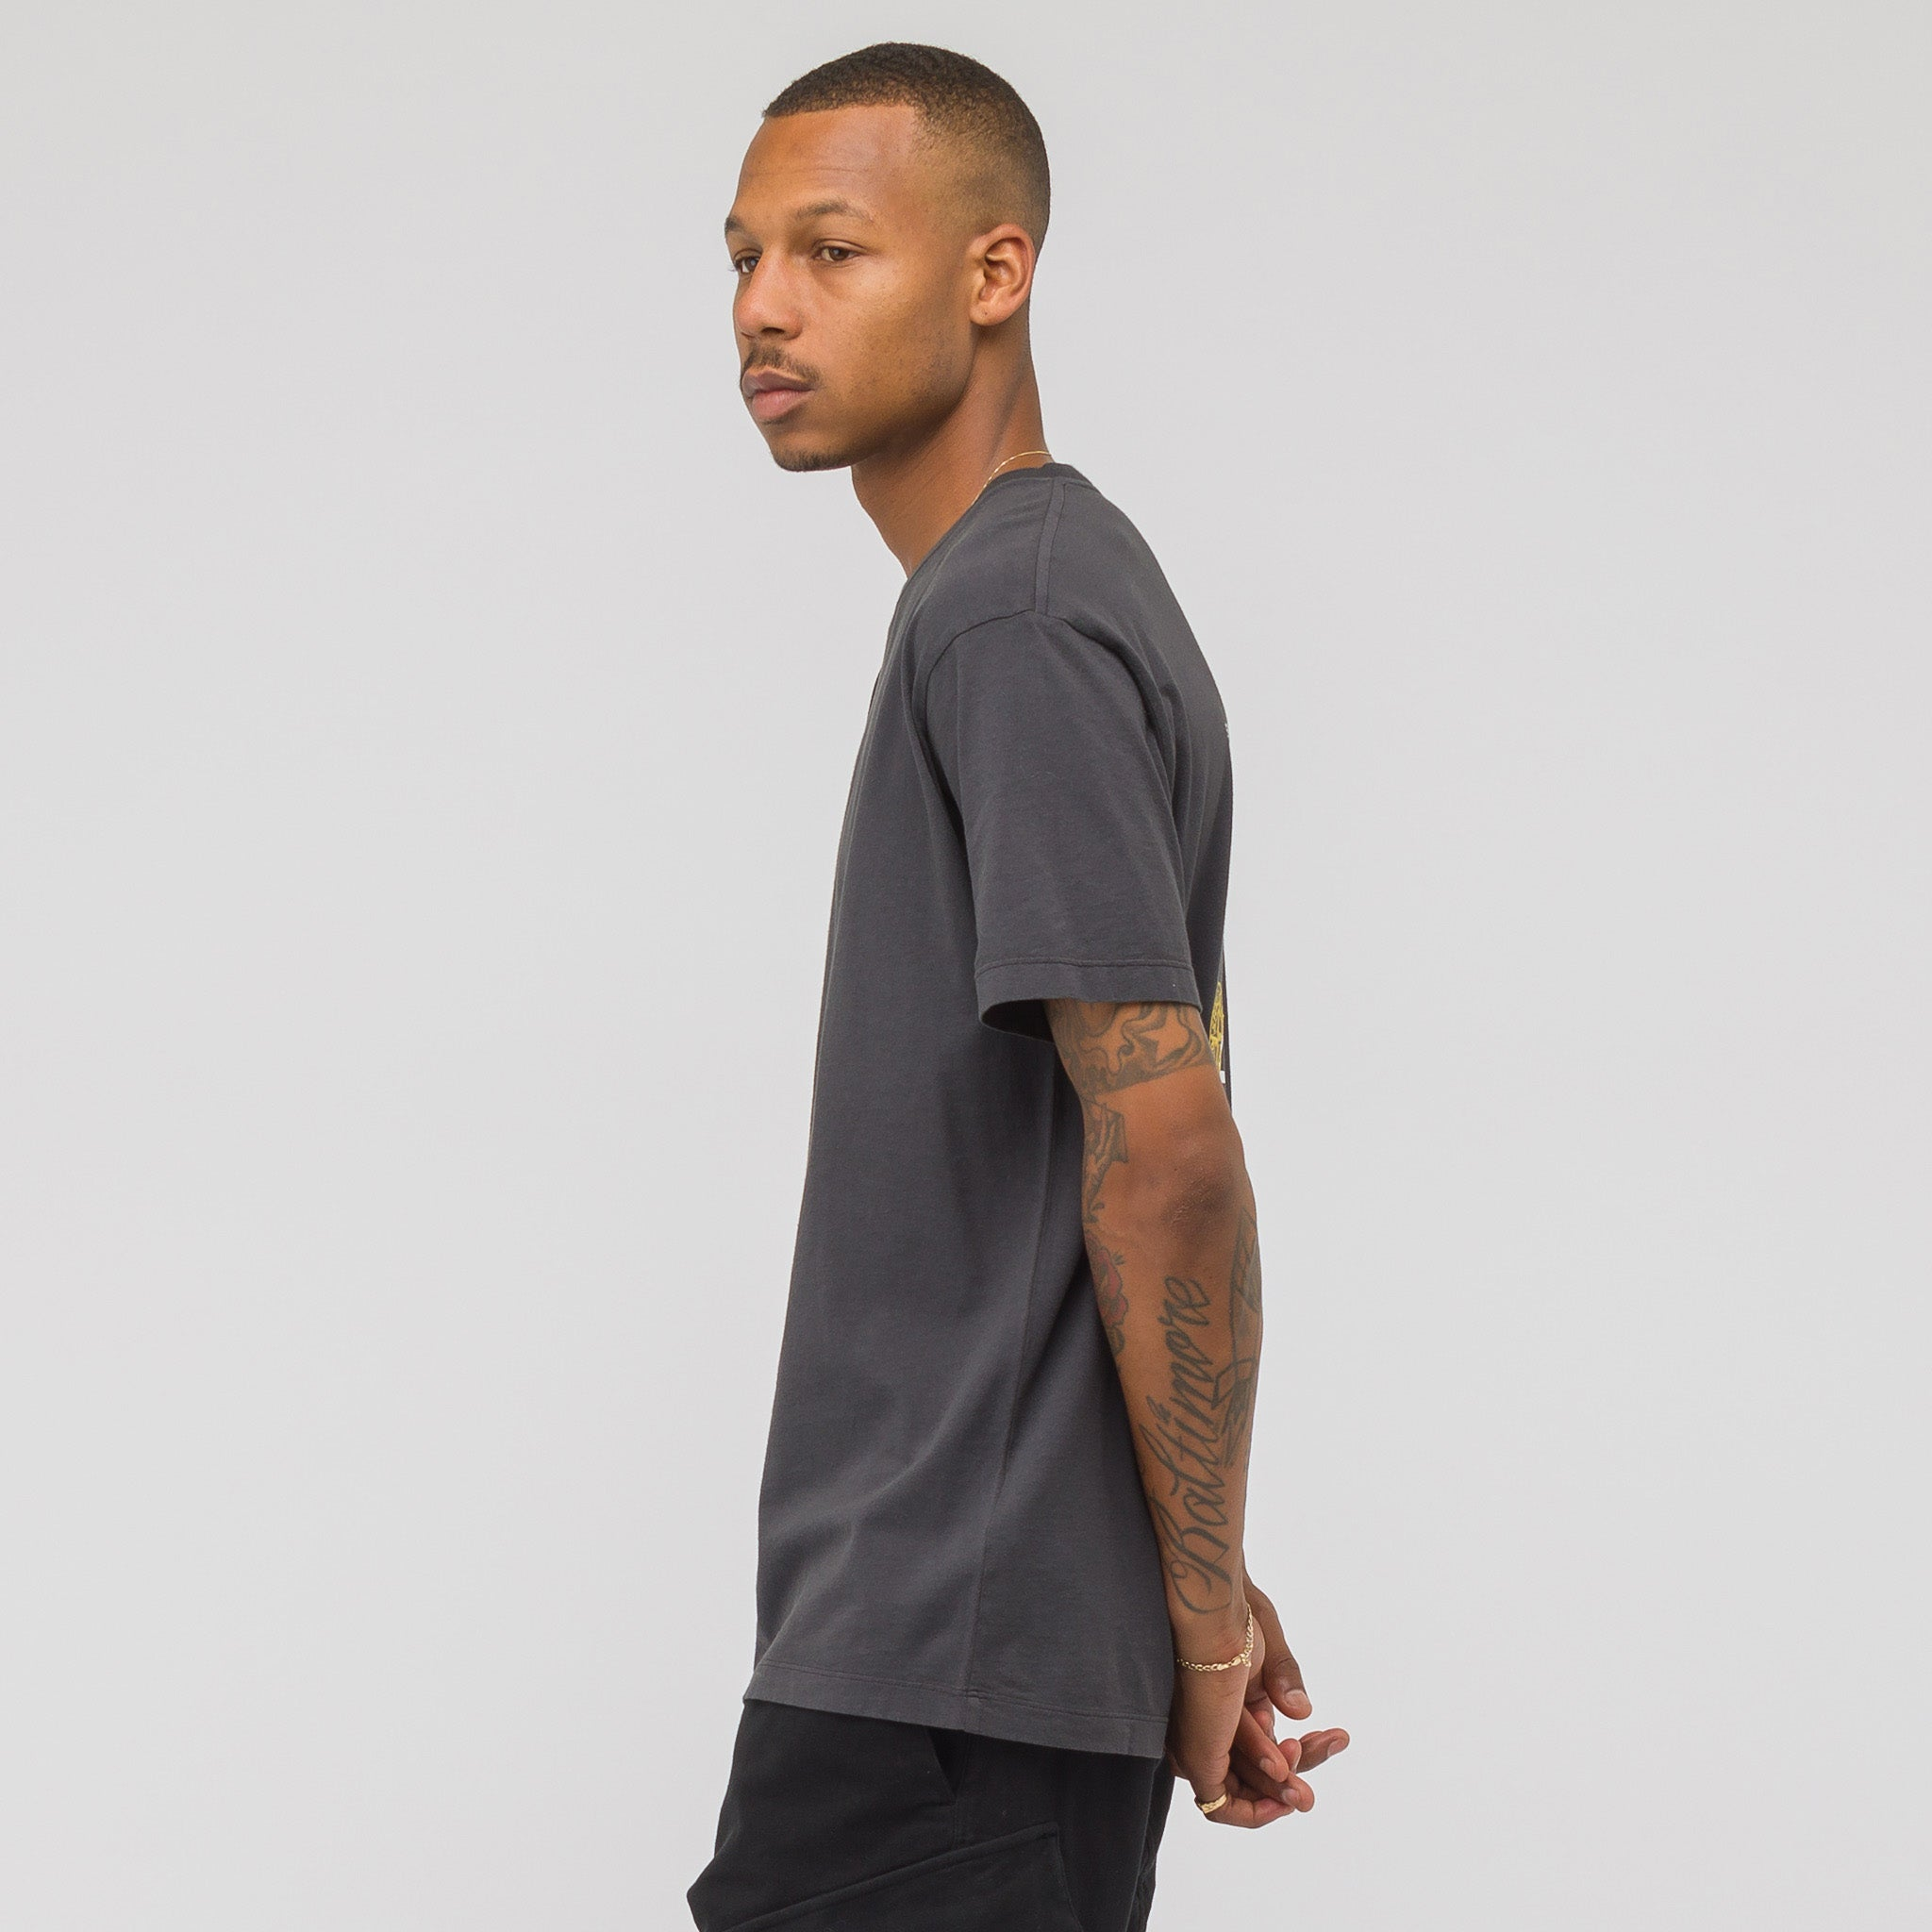 2NS81 T-Shirt in Charcoal